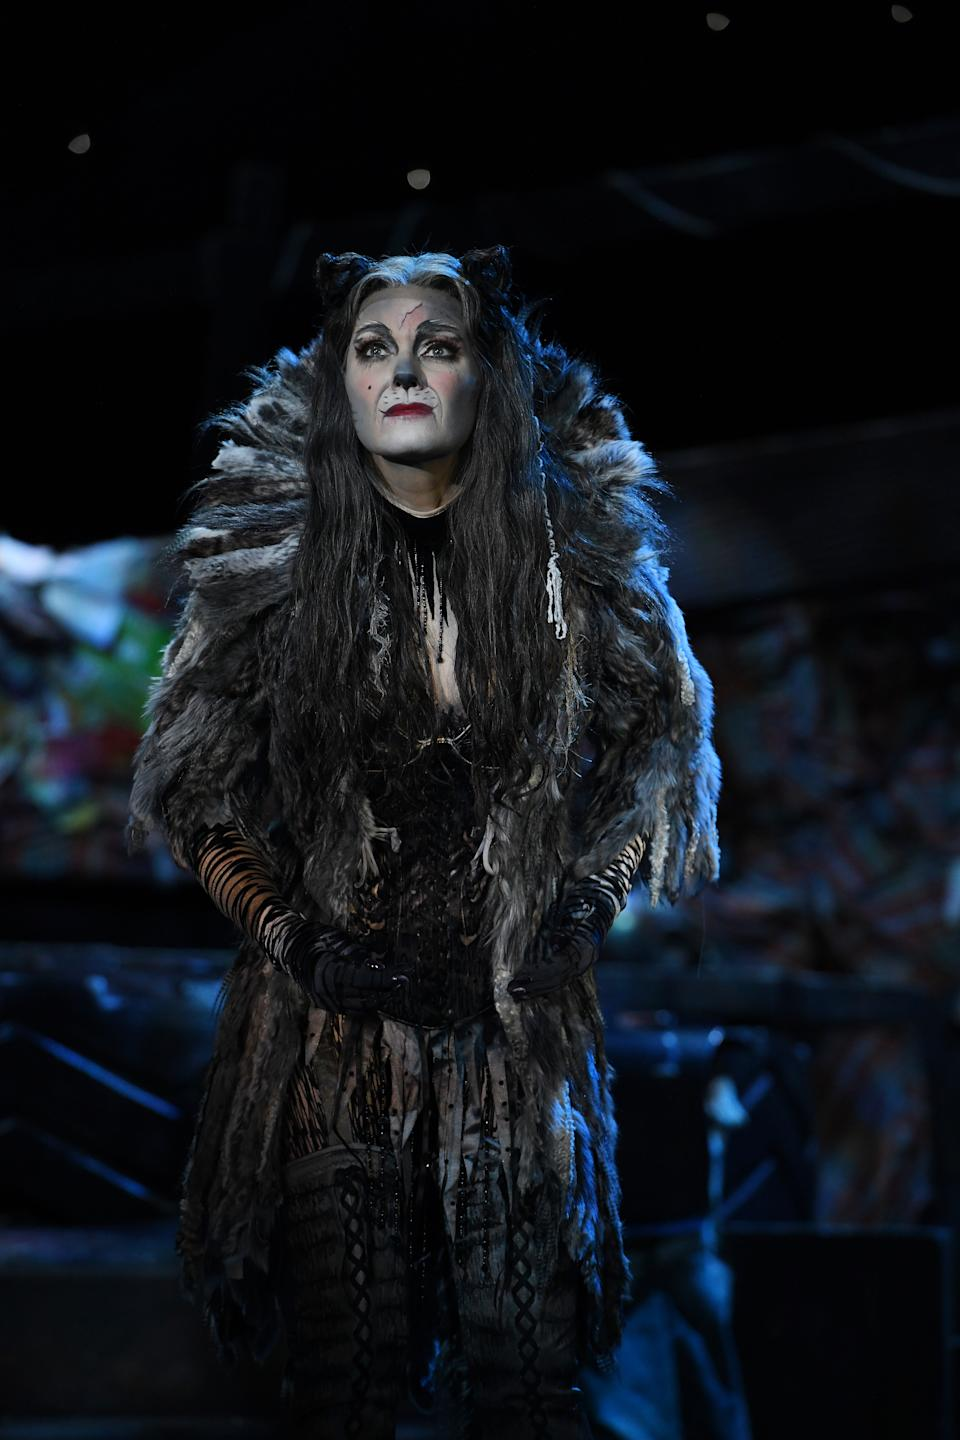 Grizabella in the London/West End Cats musical 2019 tour production by Cameron Mackintosh and Andrew Lloyd Webber's The Really Useful Theatre Group. (PHOTO: CATS Tour 2019/Alessandro Pinna)